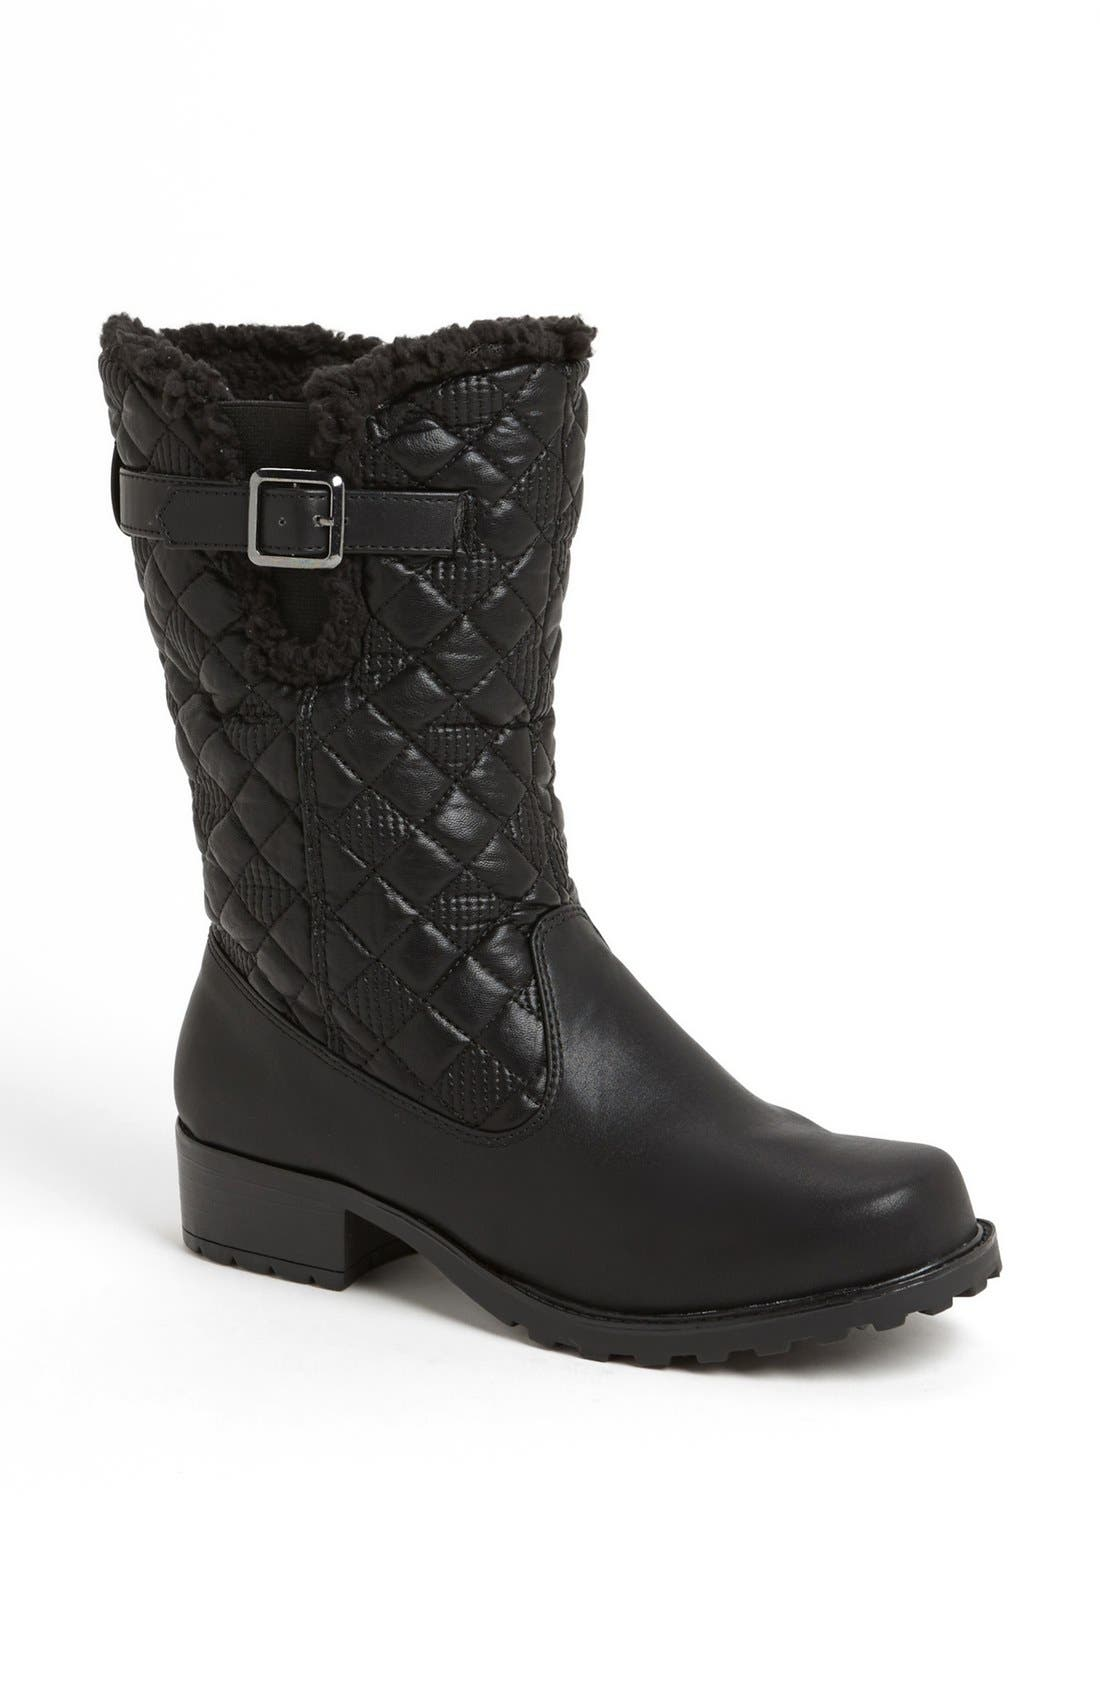 Trotters 'Blizzard III' Boot